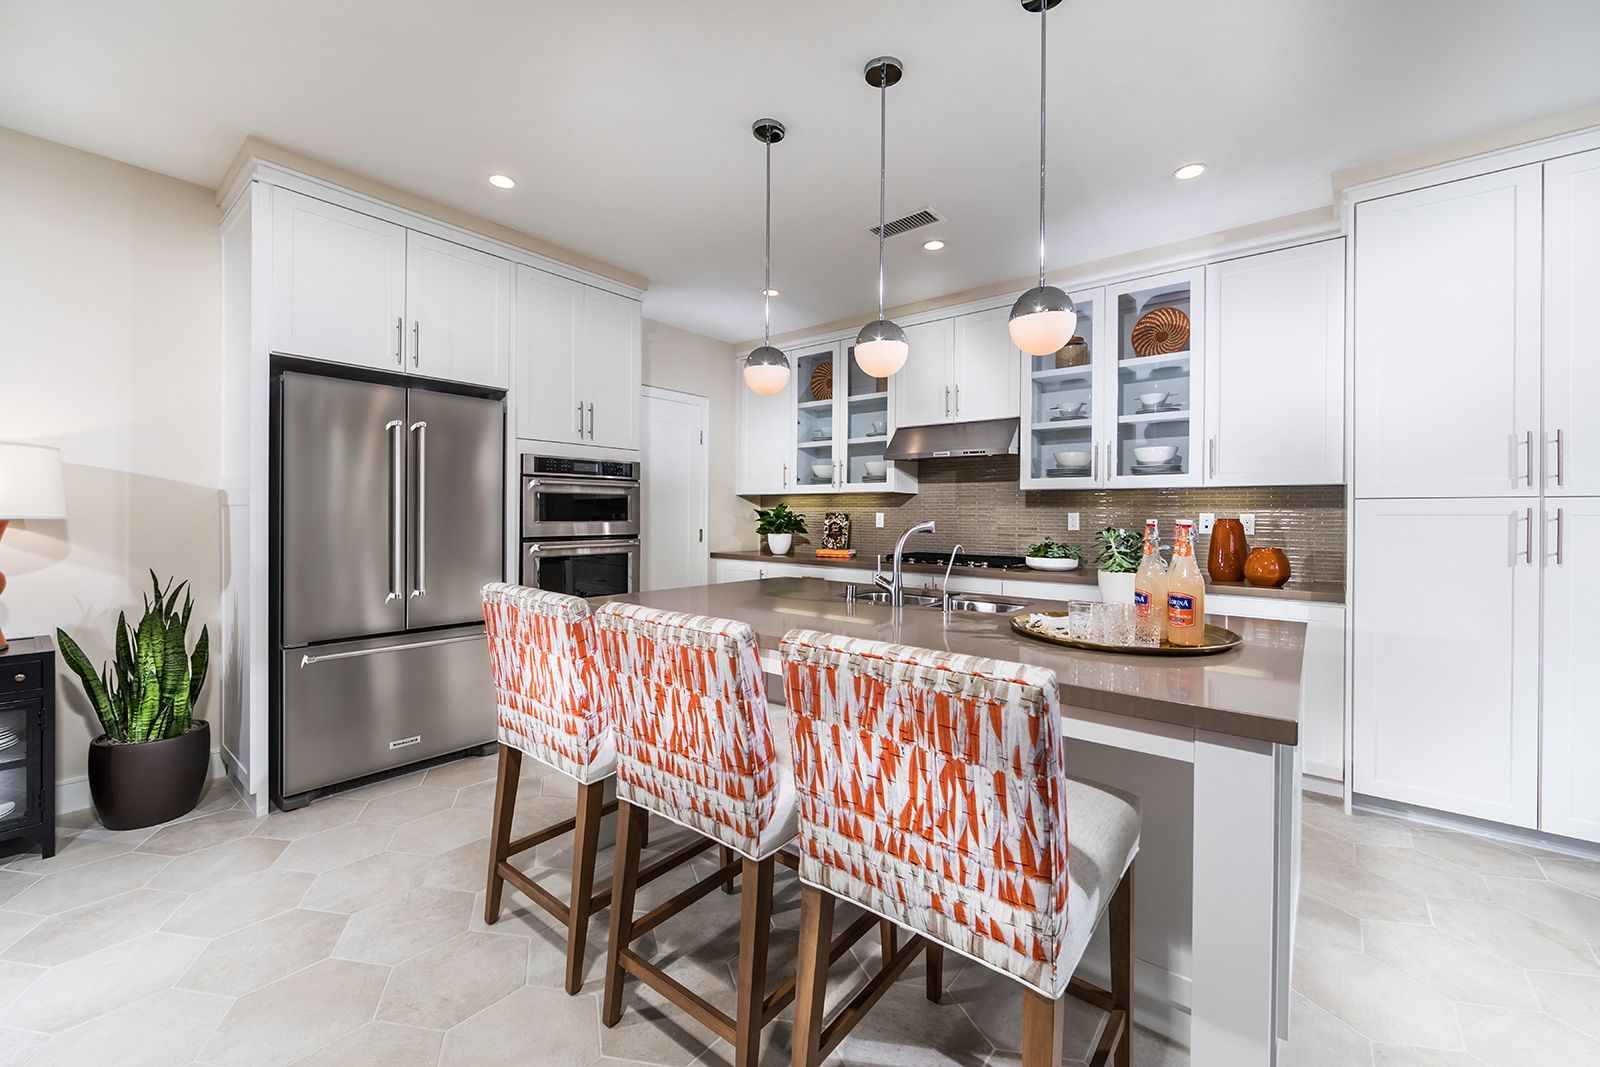 Kitchen featured in the Residence 3 By Irvine Pacific in Orange County, CA